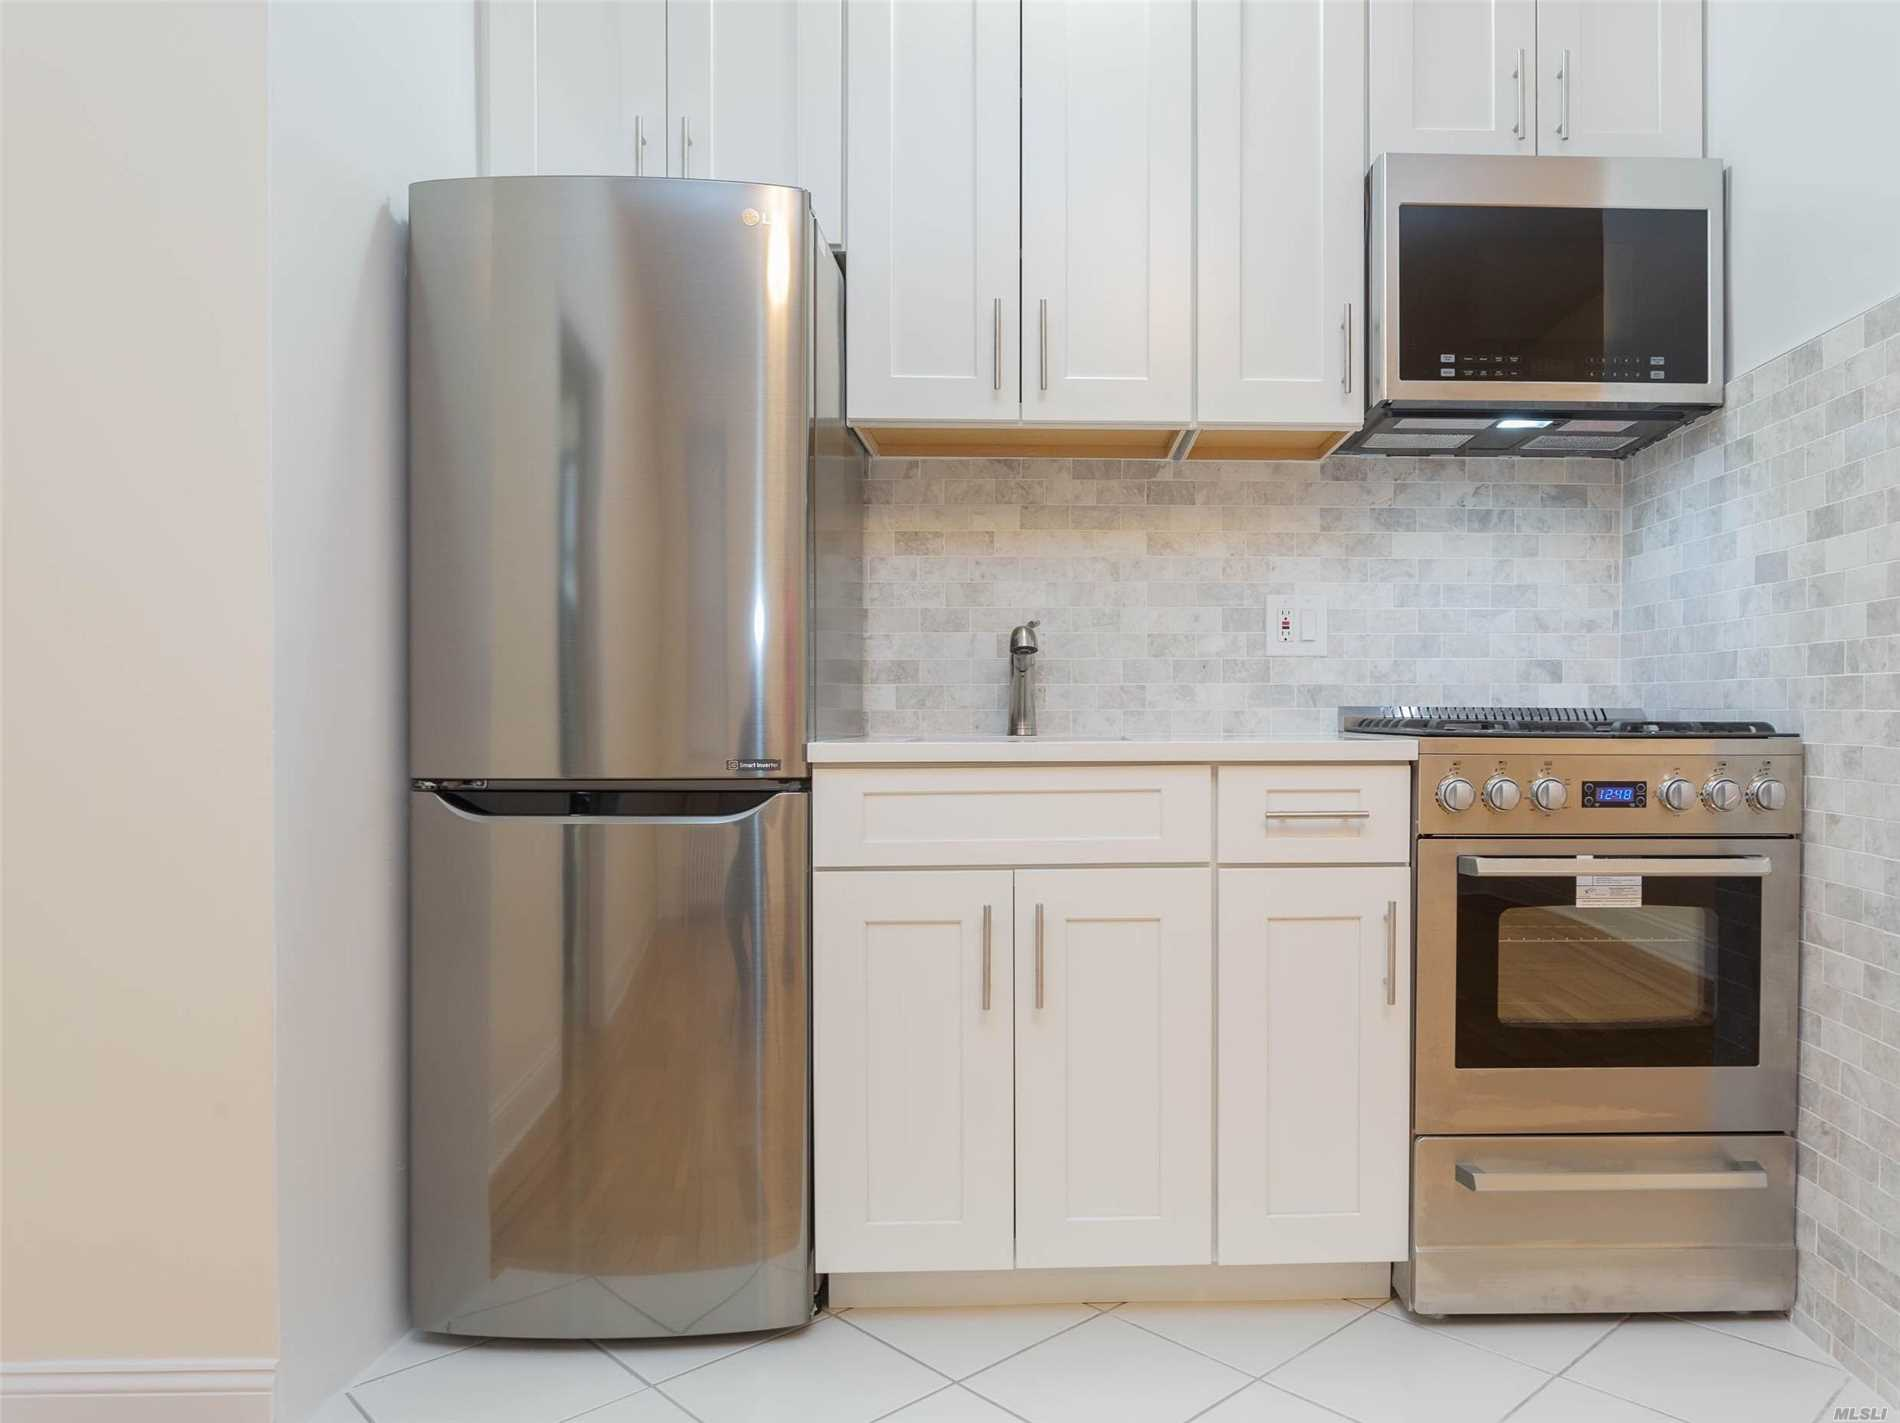 Stunning Junior 1 bedroom unit in Sunnyside NY,  just blocks away from shops, restaurants and the 7 train Subway. Just Minutes to Midtown!! Unit features hardwood floors, ample closet space, stainless steel appliances, quarts counter top and exquisite marble backsplash in the kitchen. Also, Bathroom is totally renovated with marble tile. The building has a laundry room, extra storage for bikes and Sitting Area In The Back. A must see!!